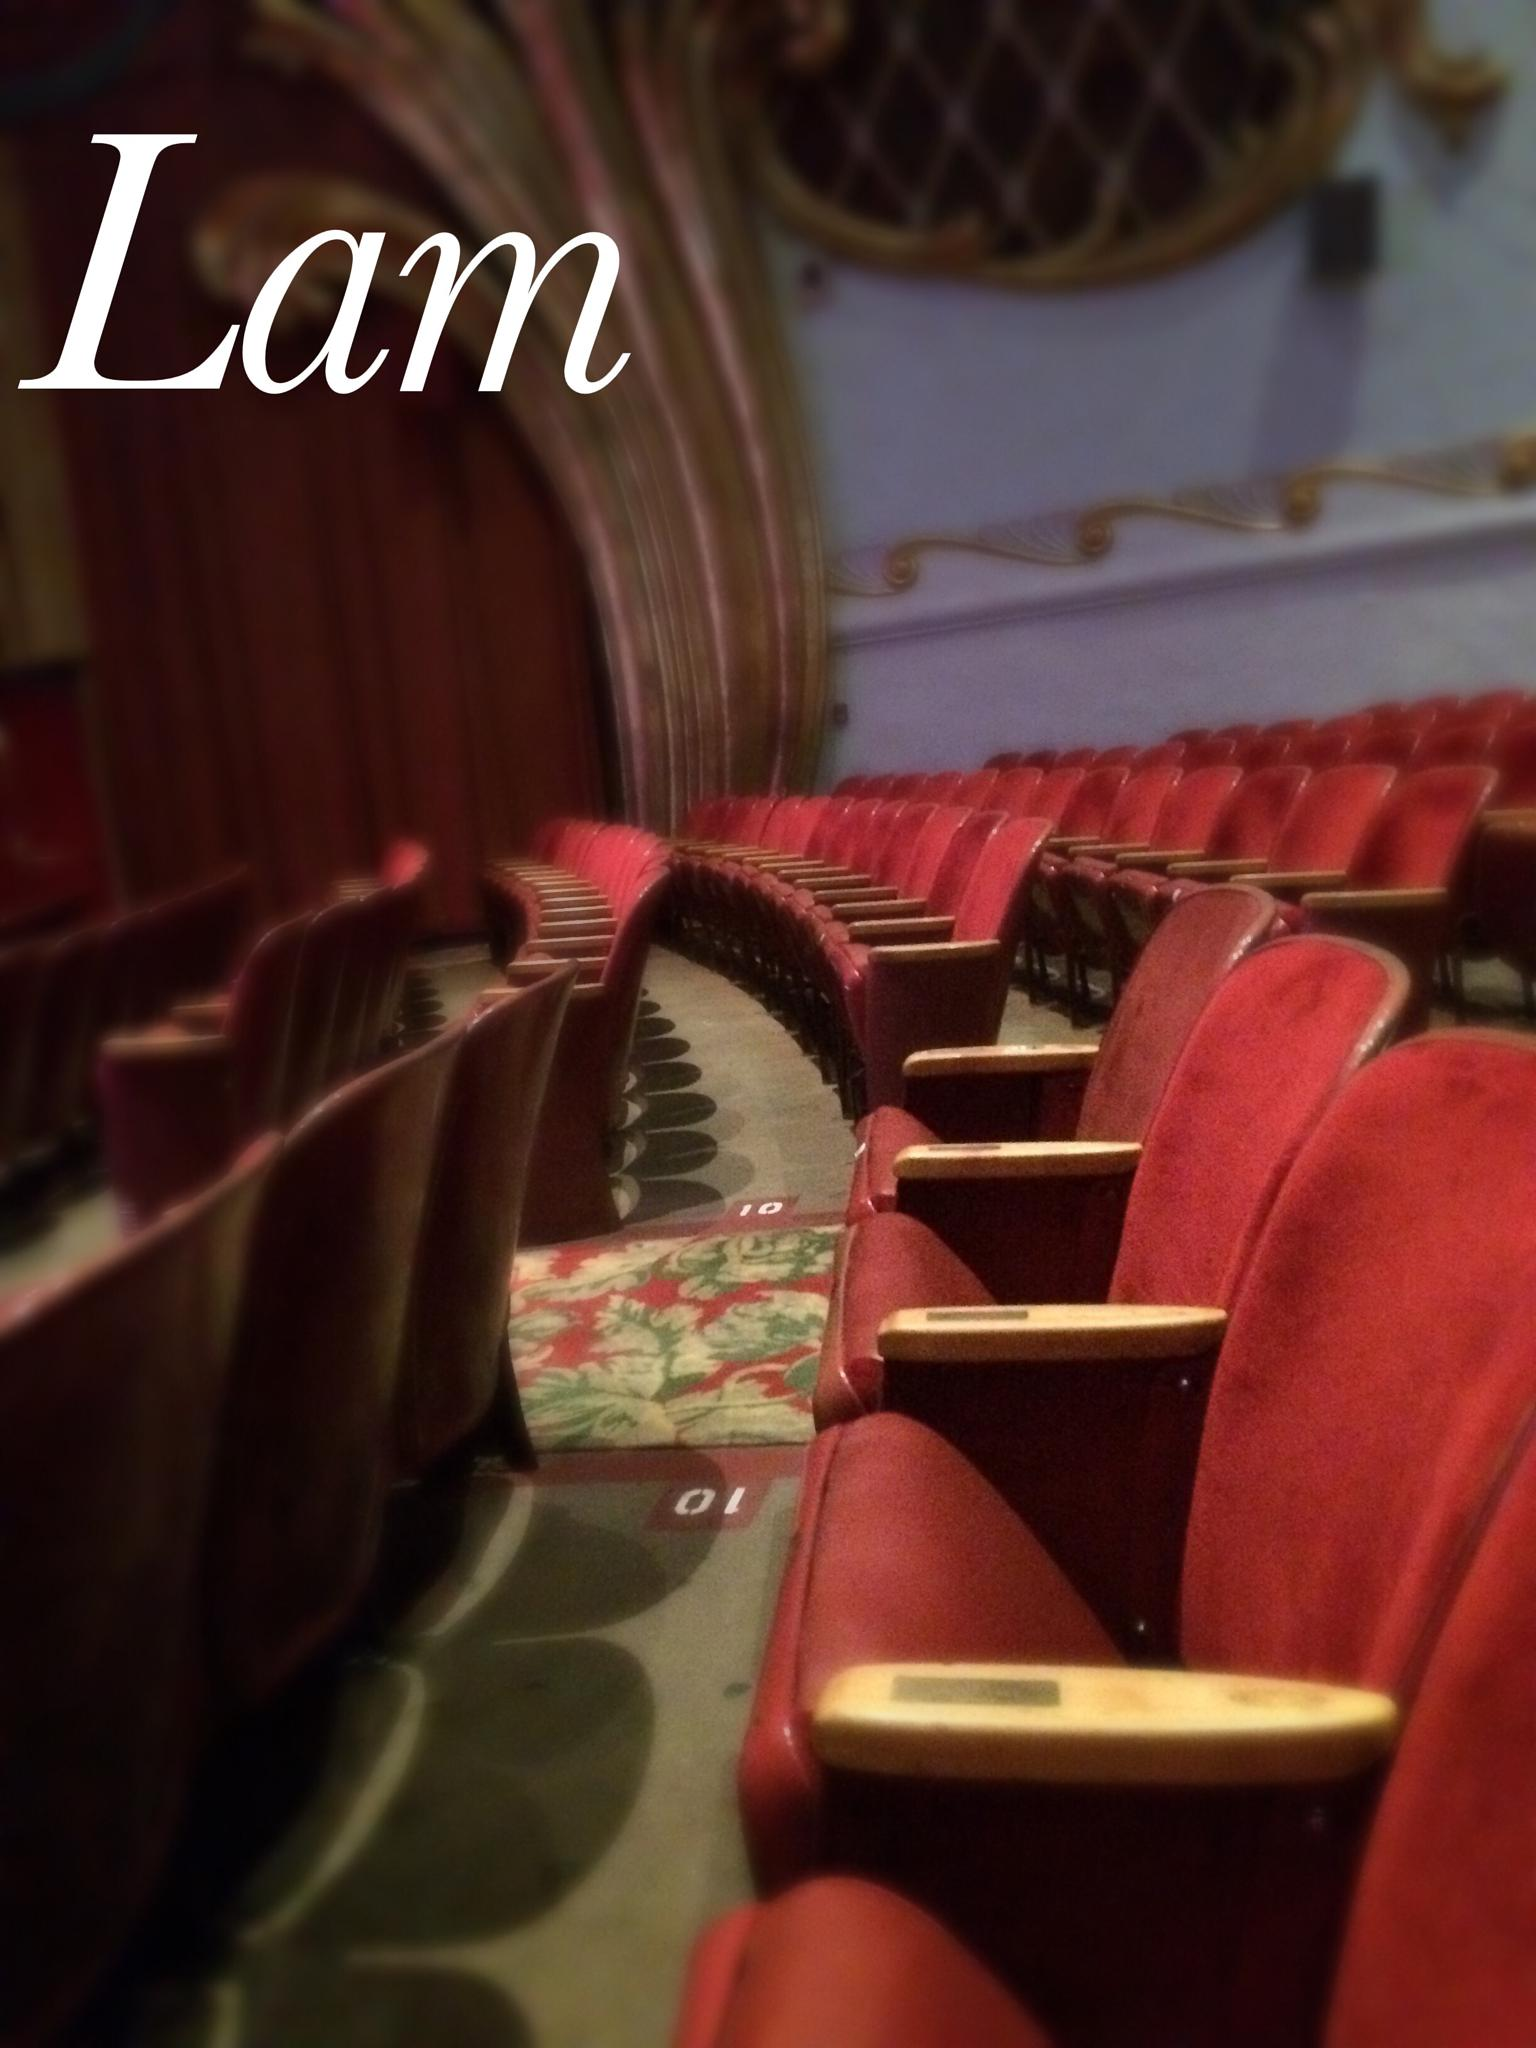 Theater  by leam1972